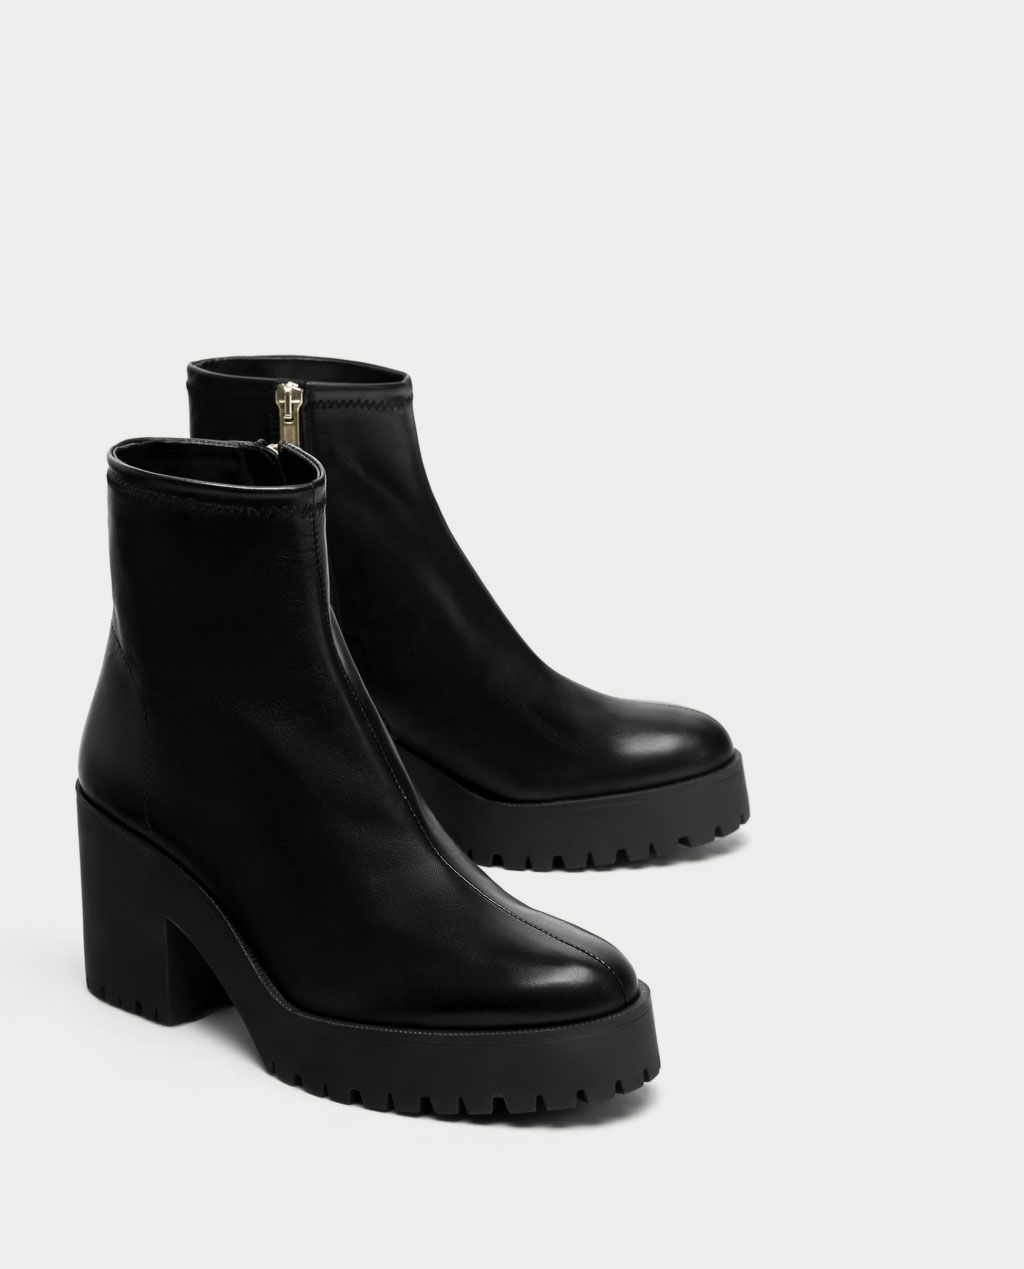 04a06ee880c Image 1 of LEATHER HIGH HEEL ANKLE BOOTS WITH TRACK SOLE from Zara ...